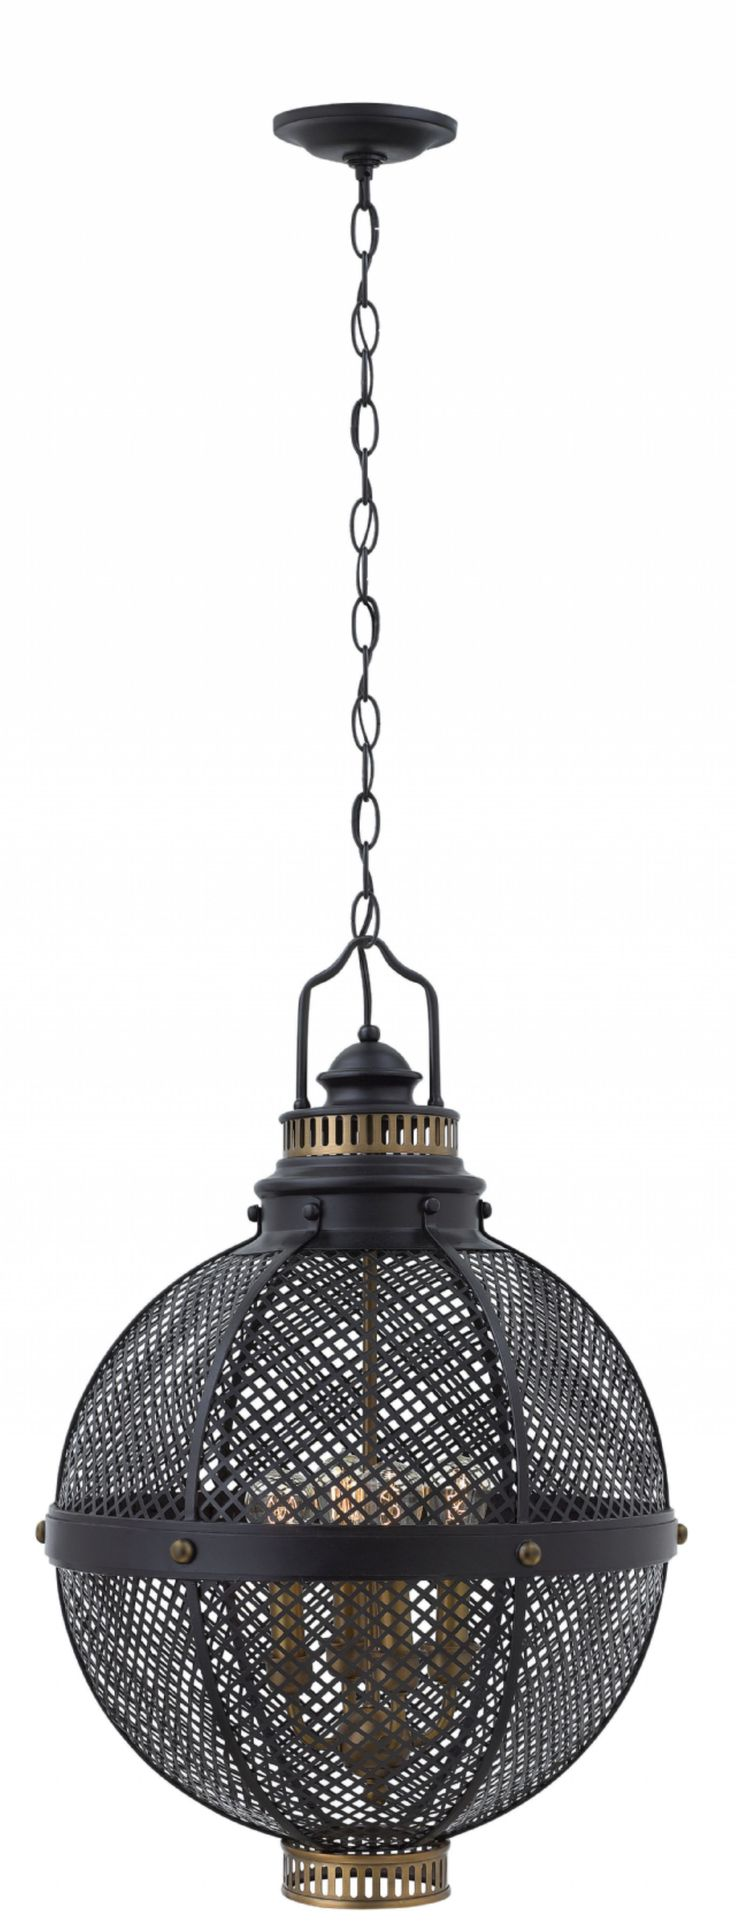 hinkley lighting carries many black miramar interior hanging light fixtures that can be used to enhance the appearance and lighting of any home